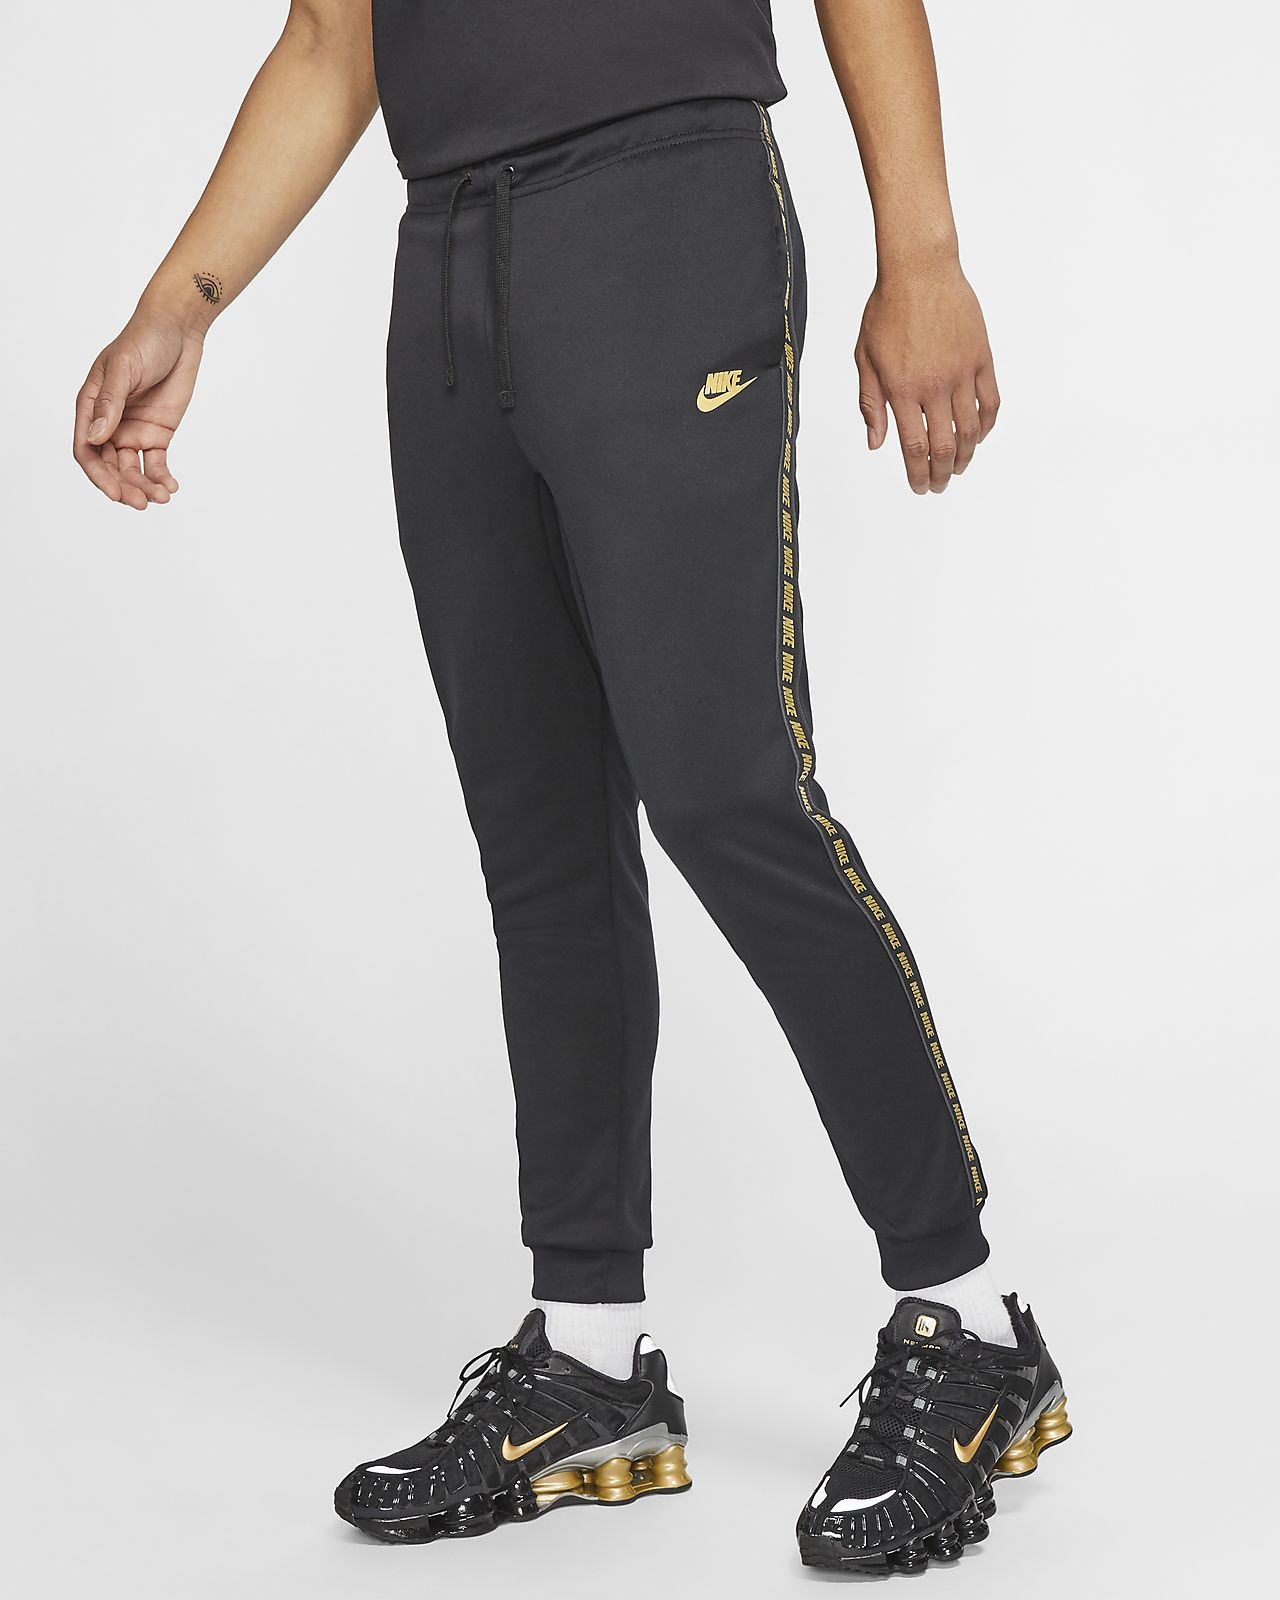 Nikesportswear Cheaper Than Retail Price Buy Clothing Accessories And Lifestyle Products For Women Men